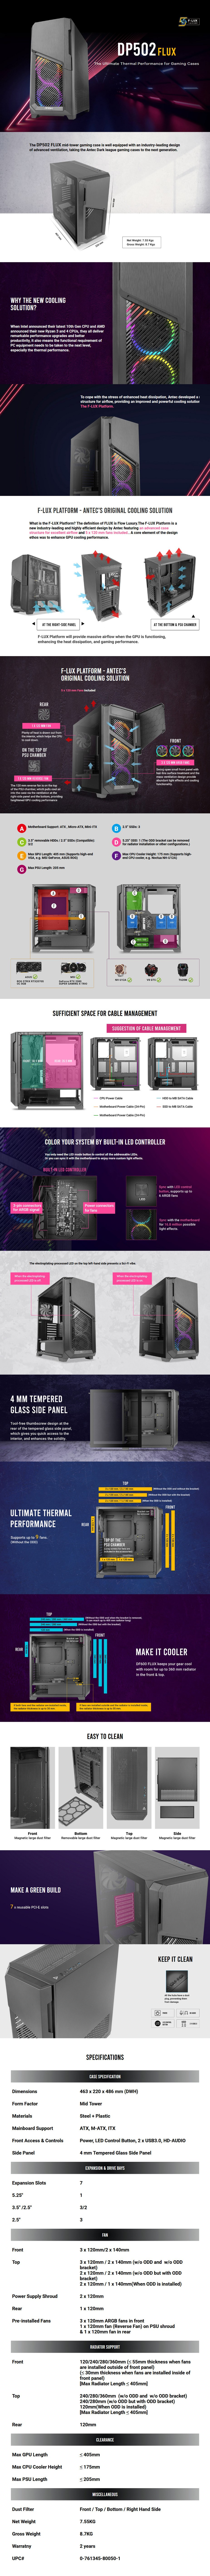 Antec DP502 FLUX Tempered Glass Mid-Tower ATX Case - Overview 1